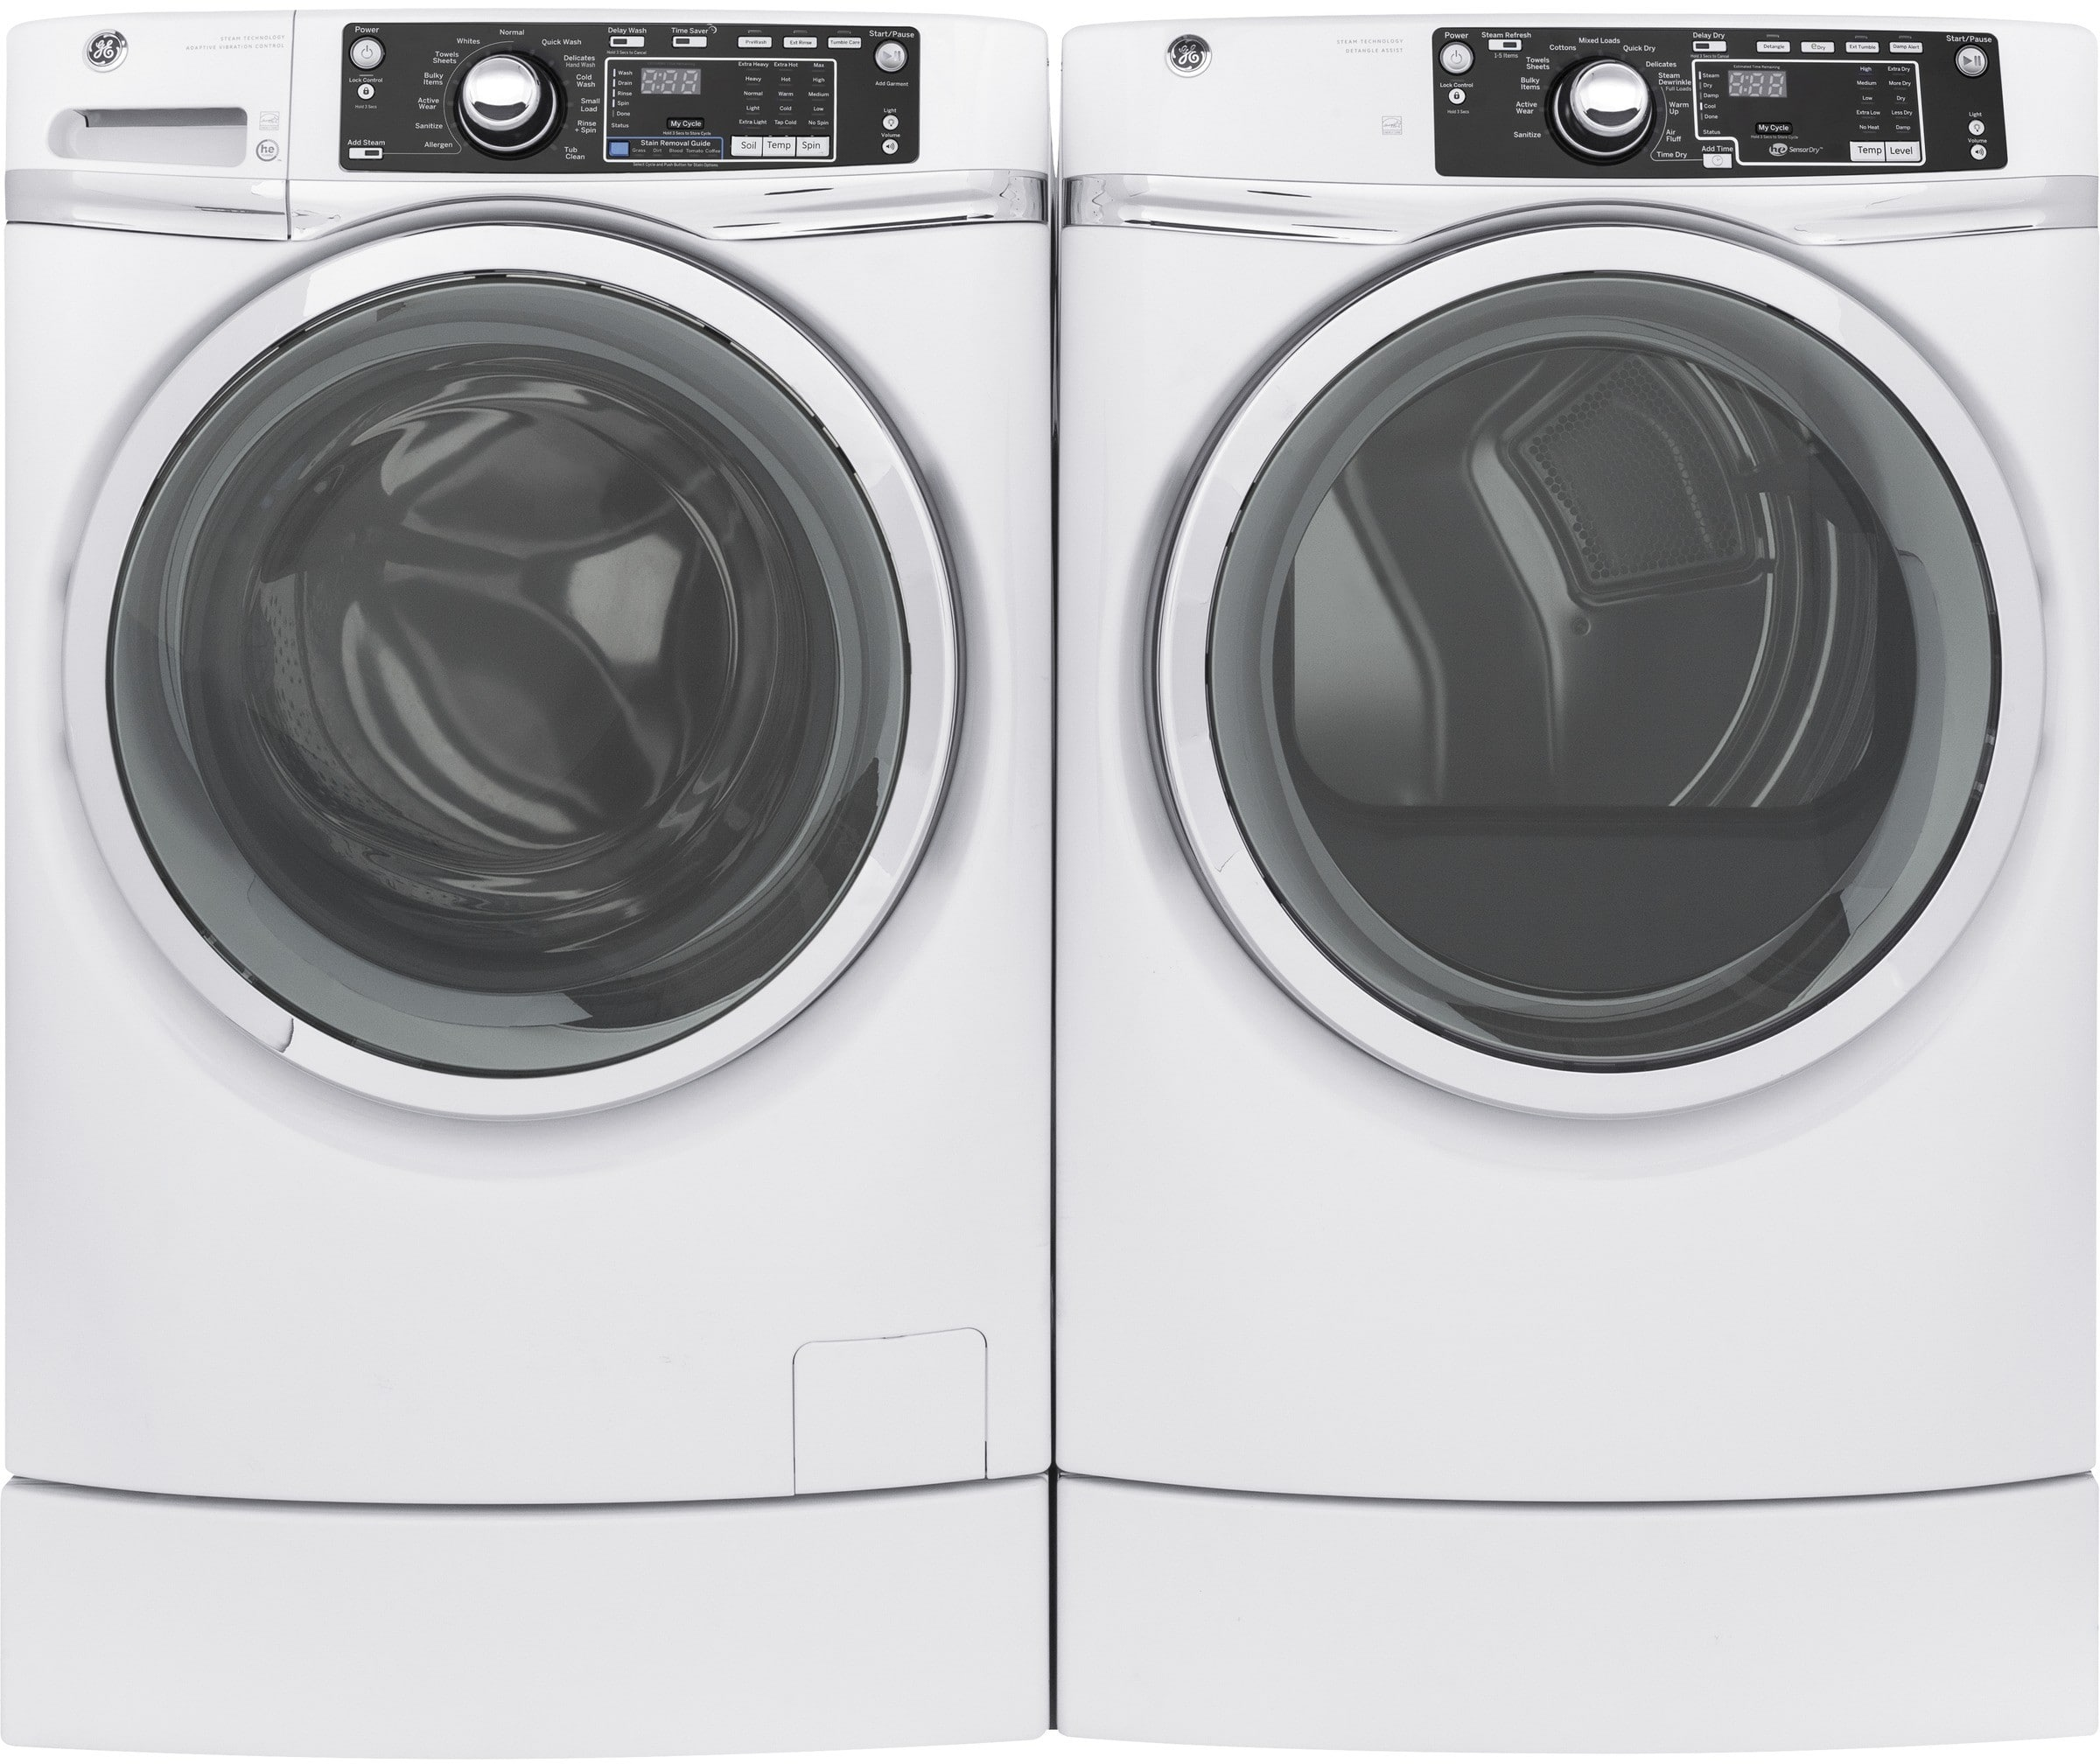 ge gewadrew91 side by side washer dryer set with front load washer and electric dryer in white. Black Bedroom Furniture Sets. Home Design Ideas